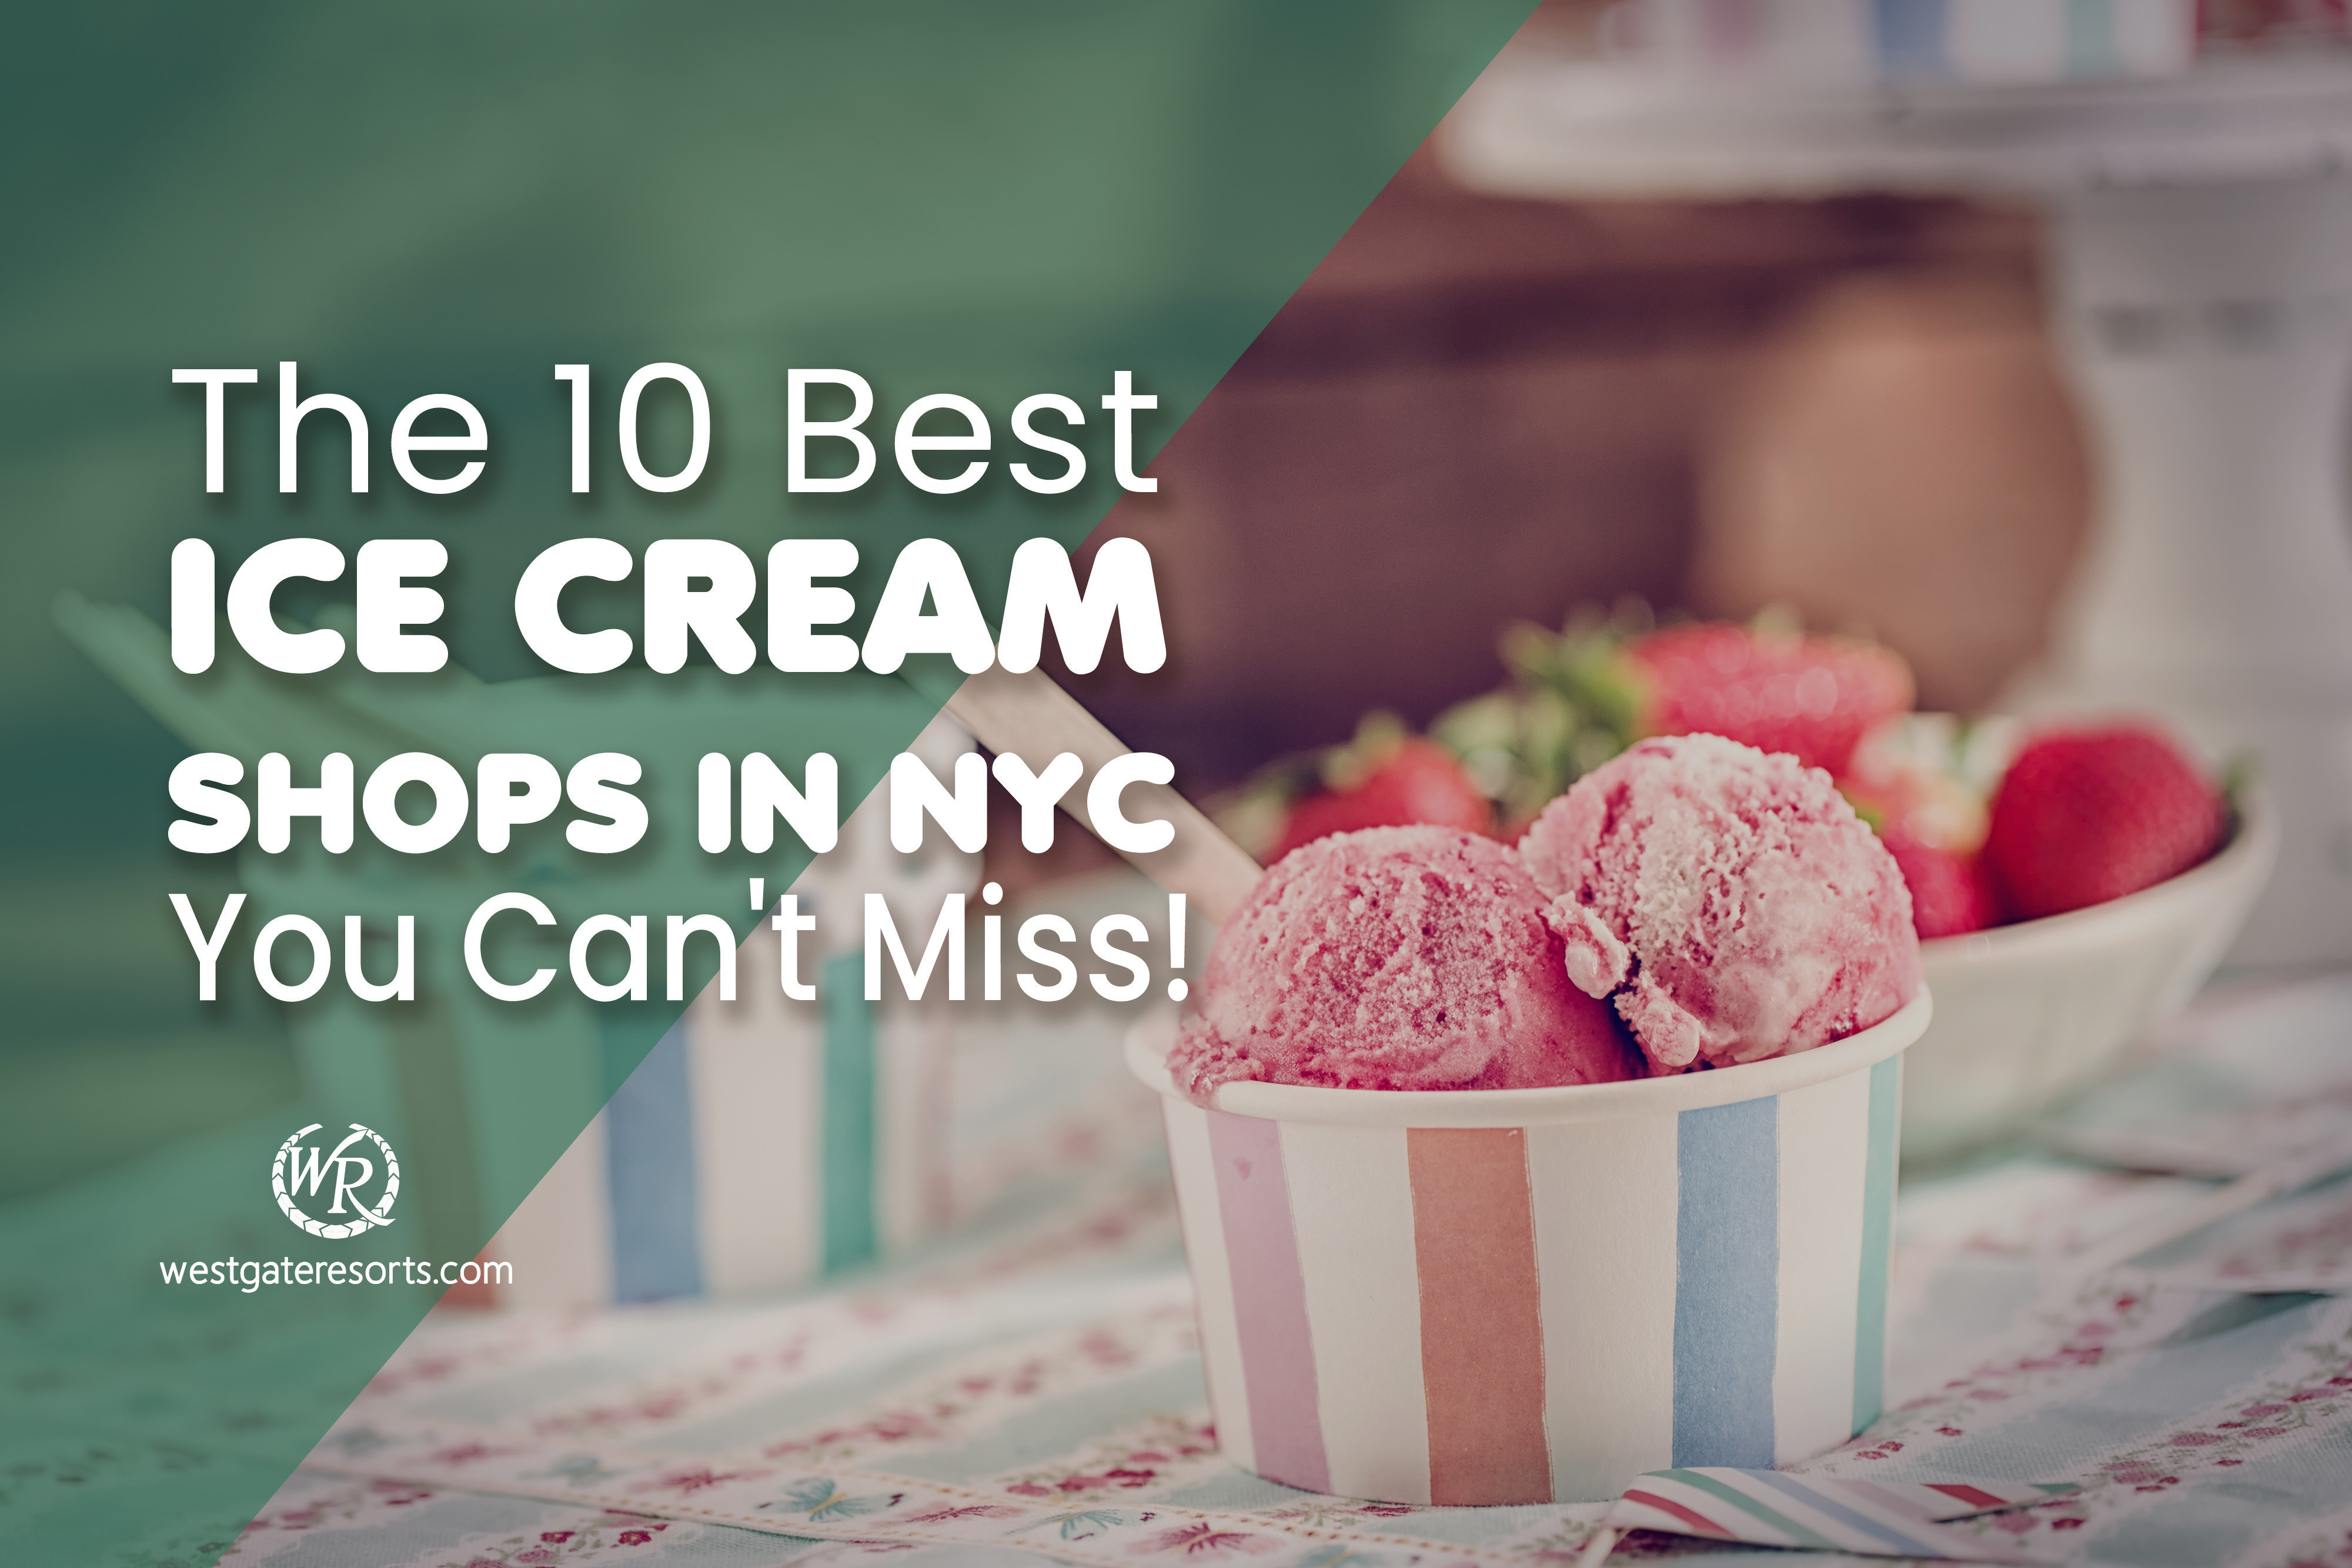 The 10 Best Ice Cream Shops In NYC To Keep You Chill!